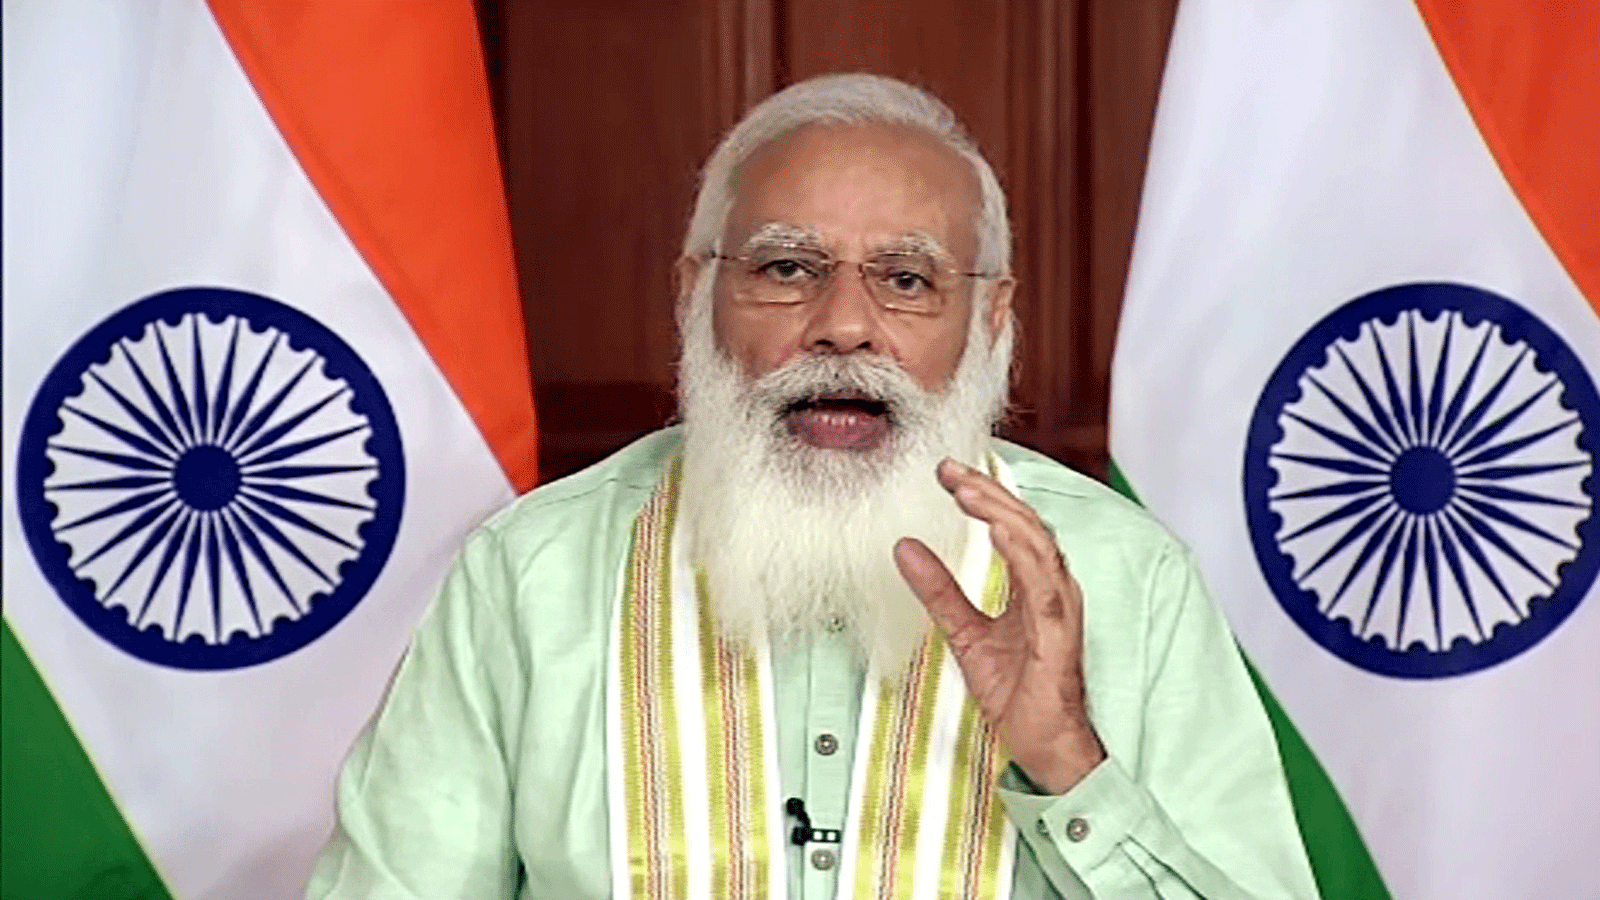 localised-containment-strategies-are-need-of-the-hour-pm-modi-on-covid-19-situation